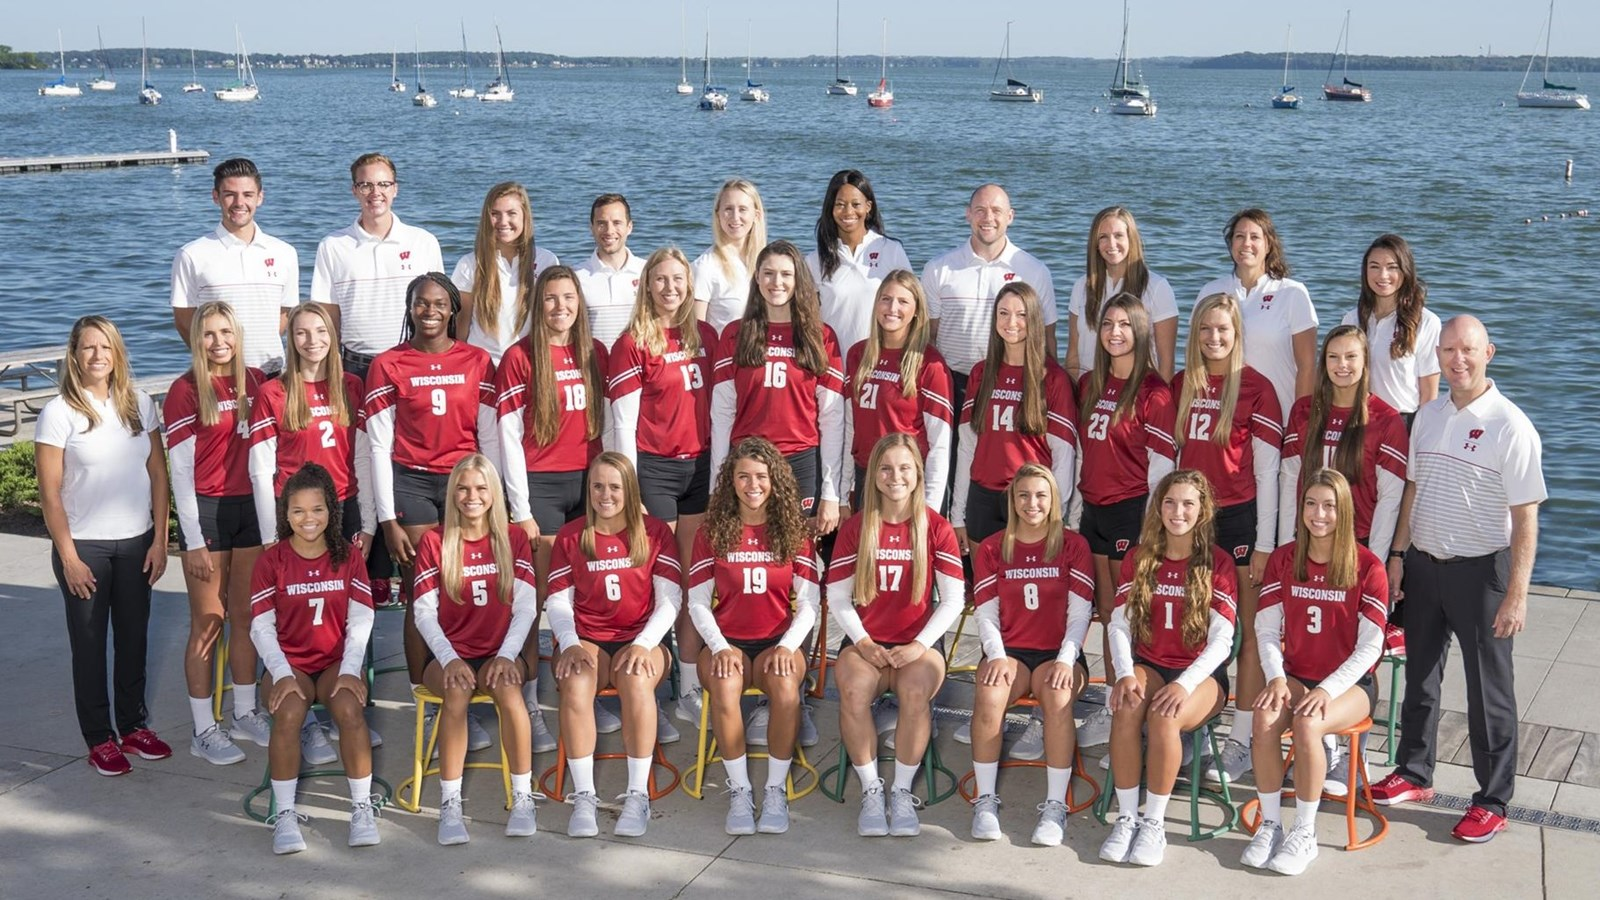 2019 Ncaa Volleyball Championship Your Wisconsin Badgers Vs The Stanford Commies 7pm Ct Tigerdroppings Com